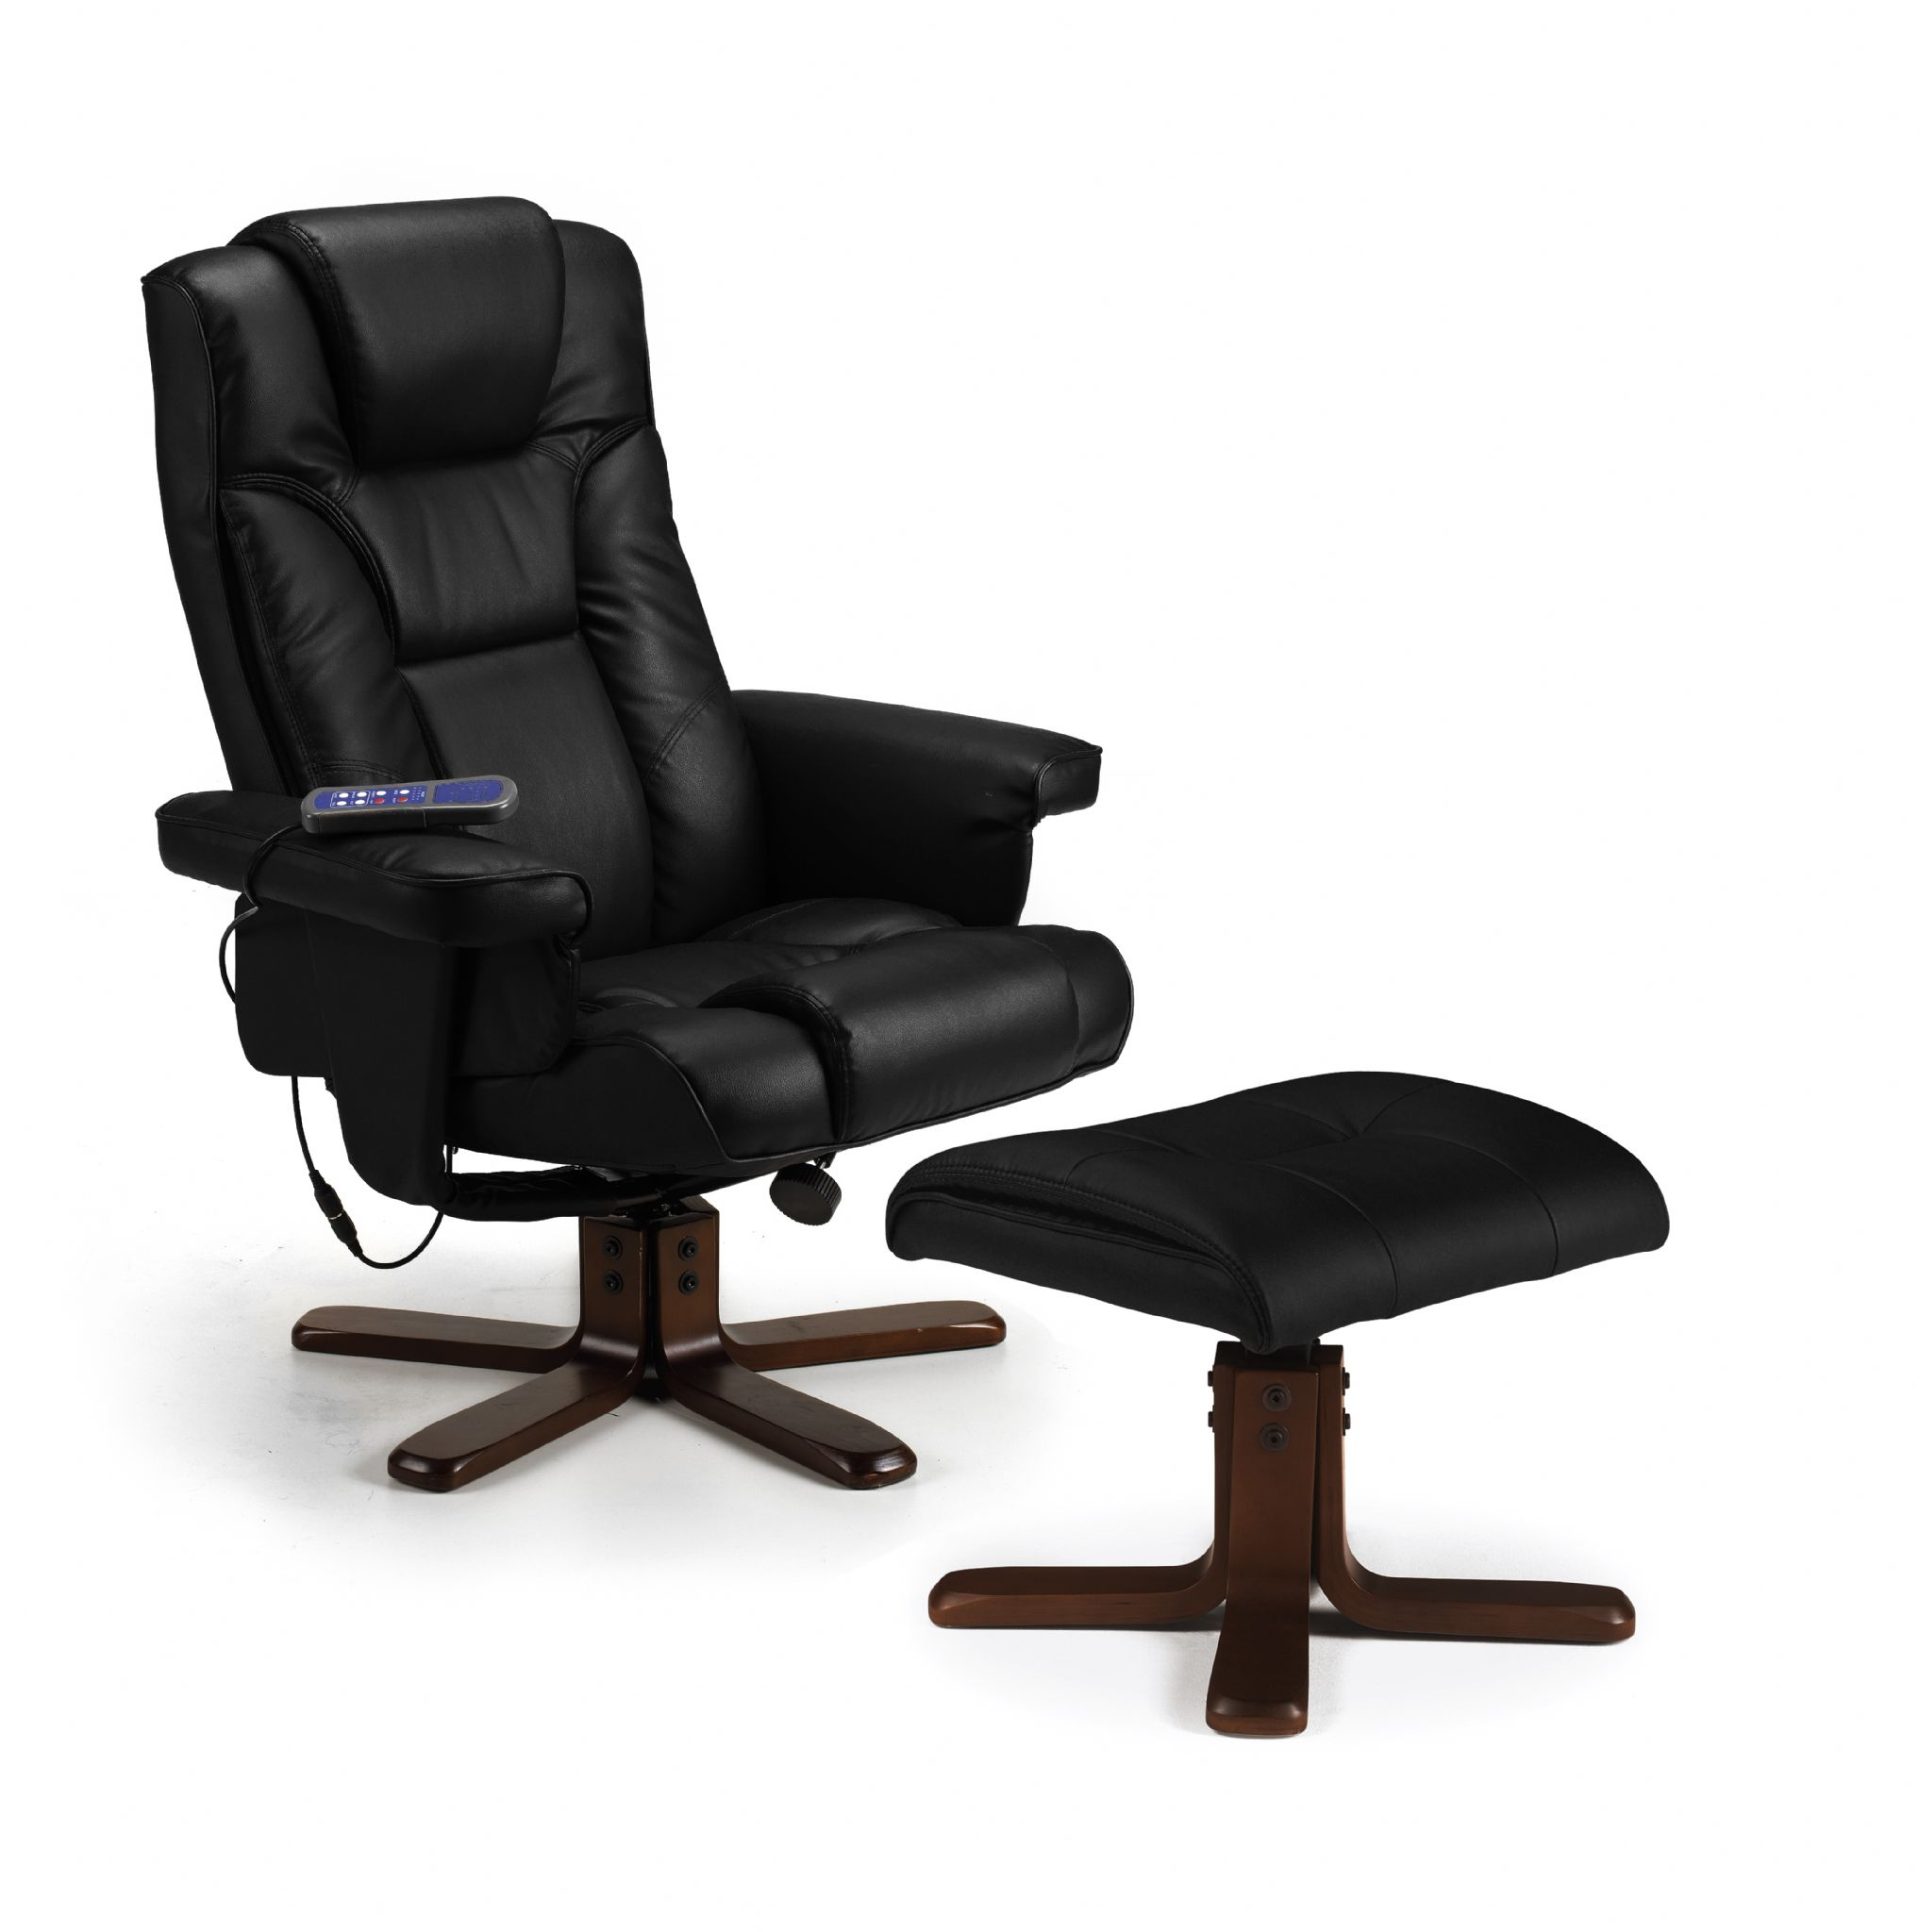 office chair johor pier 1 dining chairs roncesvalles black massage recliner and stool jb296